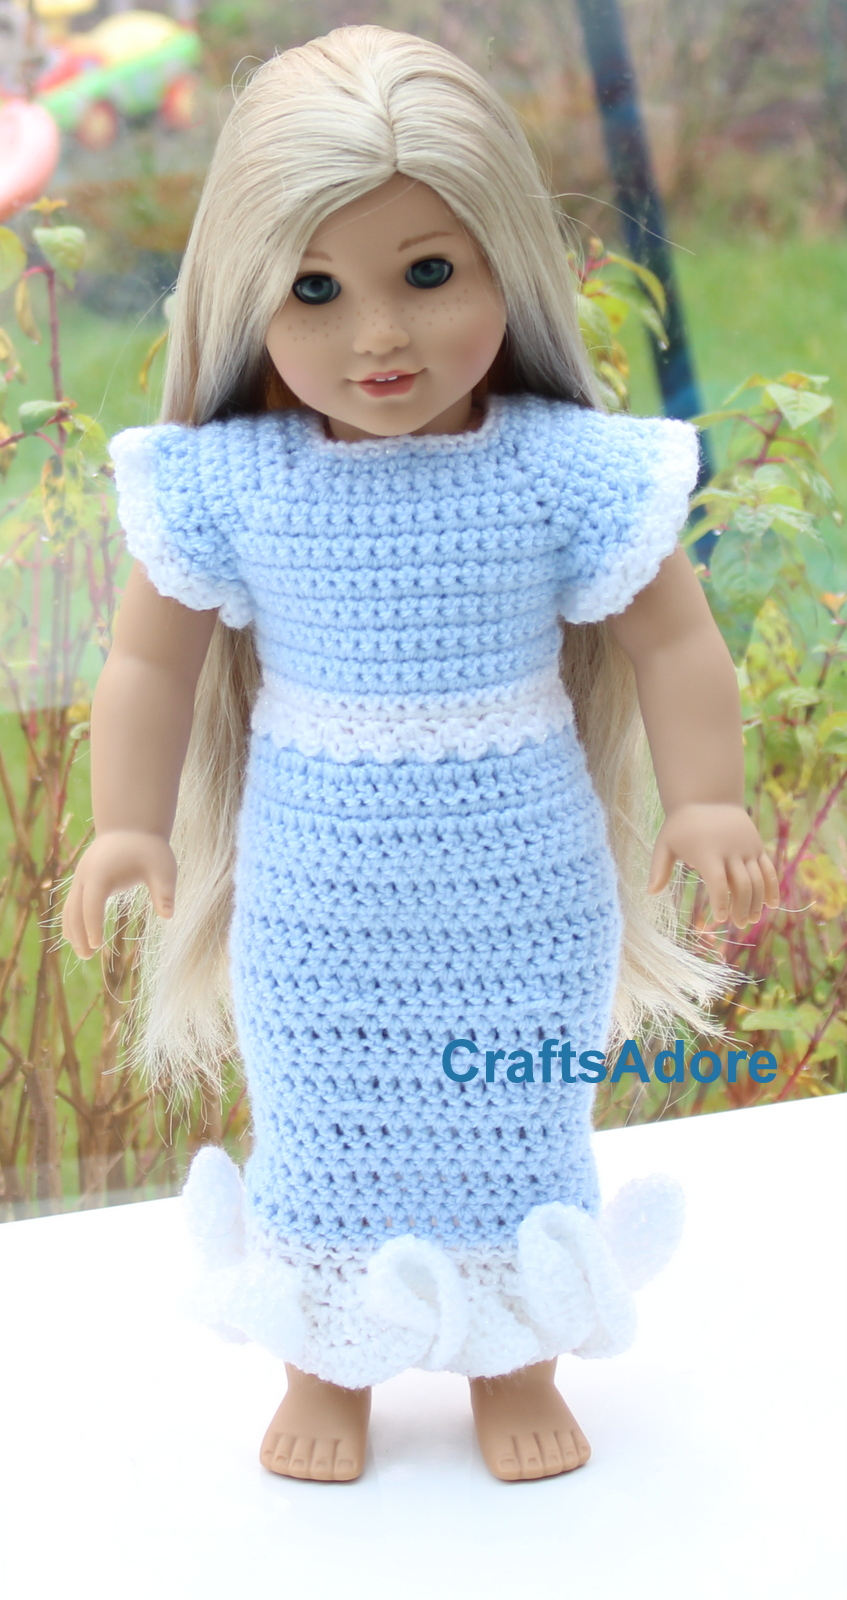 Free Crochet Patterns For American Girl Doll Custom Decorating Ideas